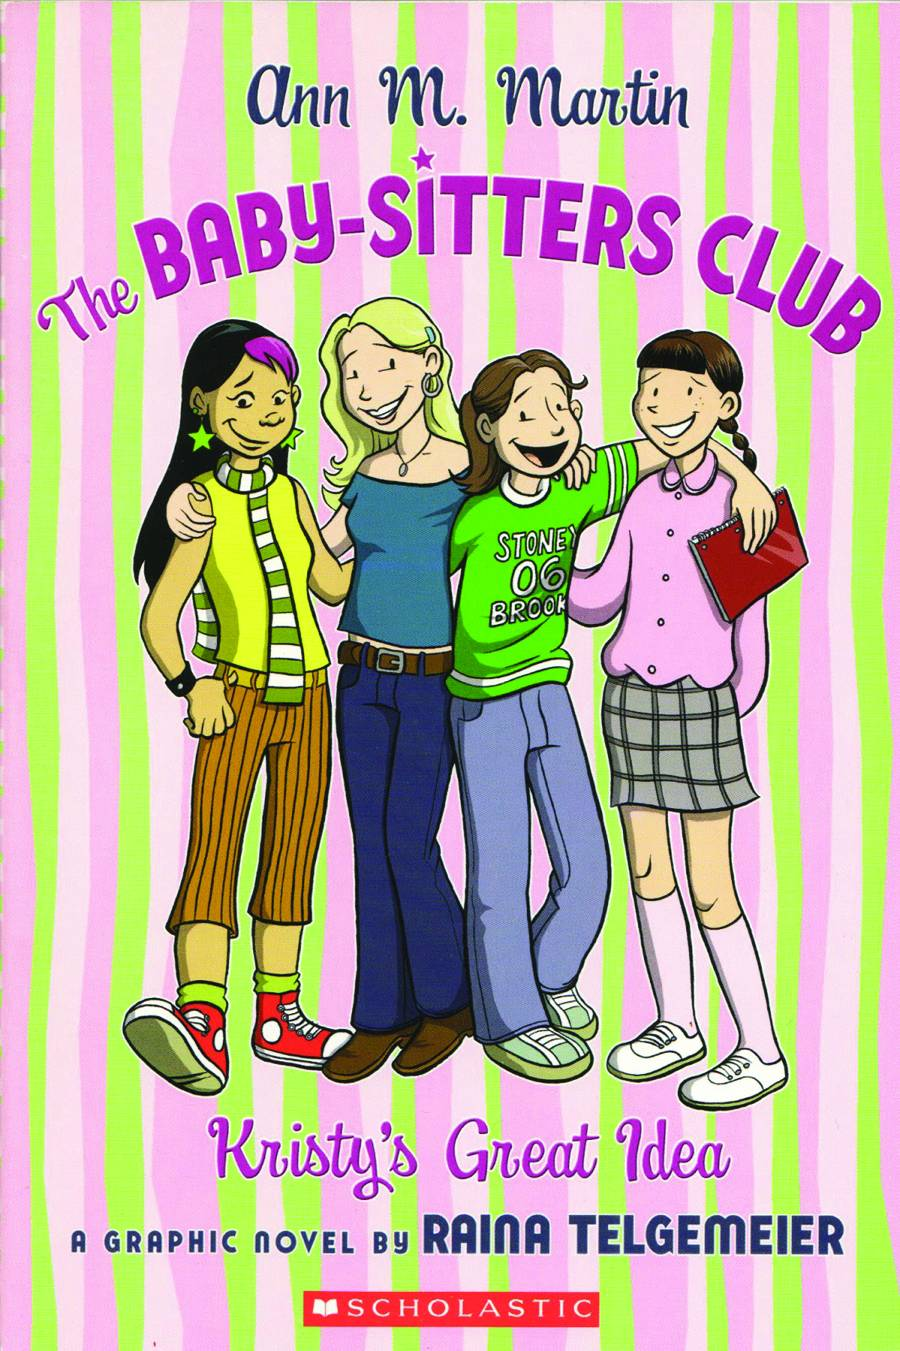 a summary of kristys great idea by ann m martin By ann m martin (author), raina telgemeier (illustrator) kristy, mary anne, claudia, and stacey are best friends and founding members of the baby-sitters club.